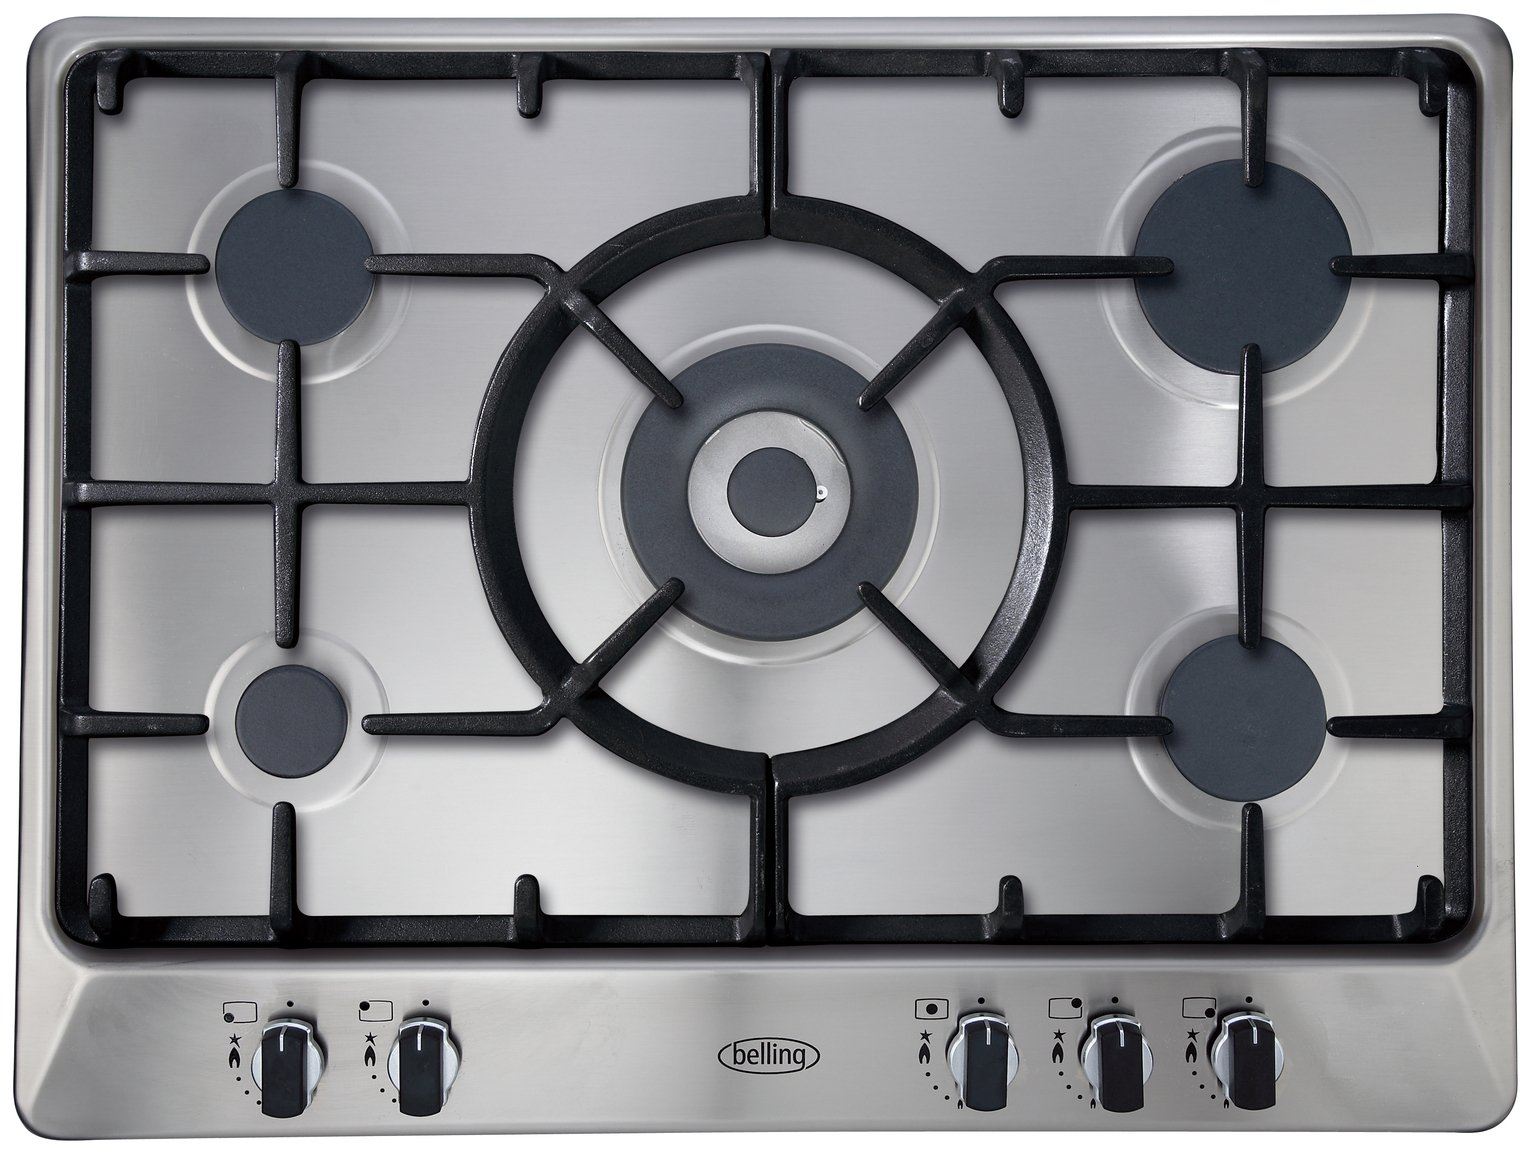 Belling GHU70GC Cast Iron Support Gas Hob - Stainless Steel